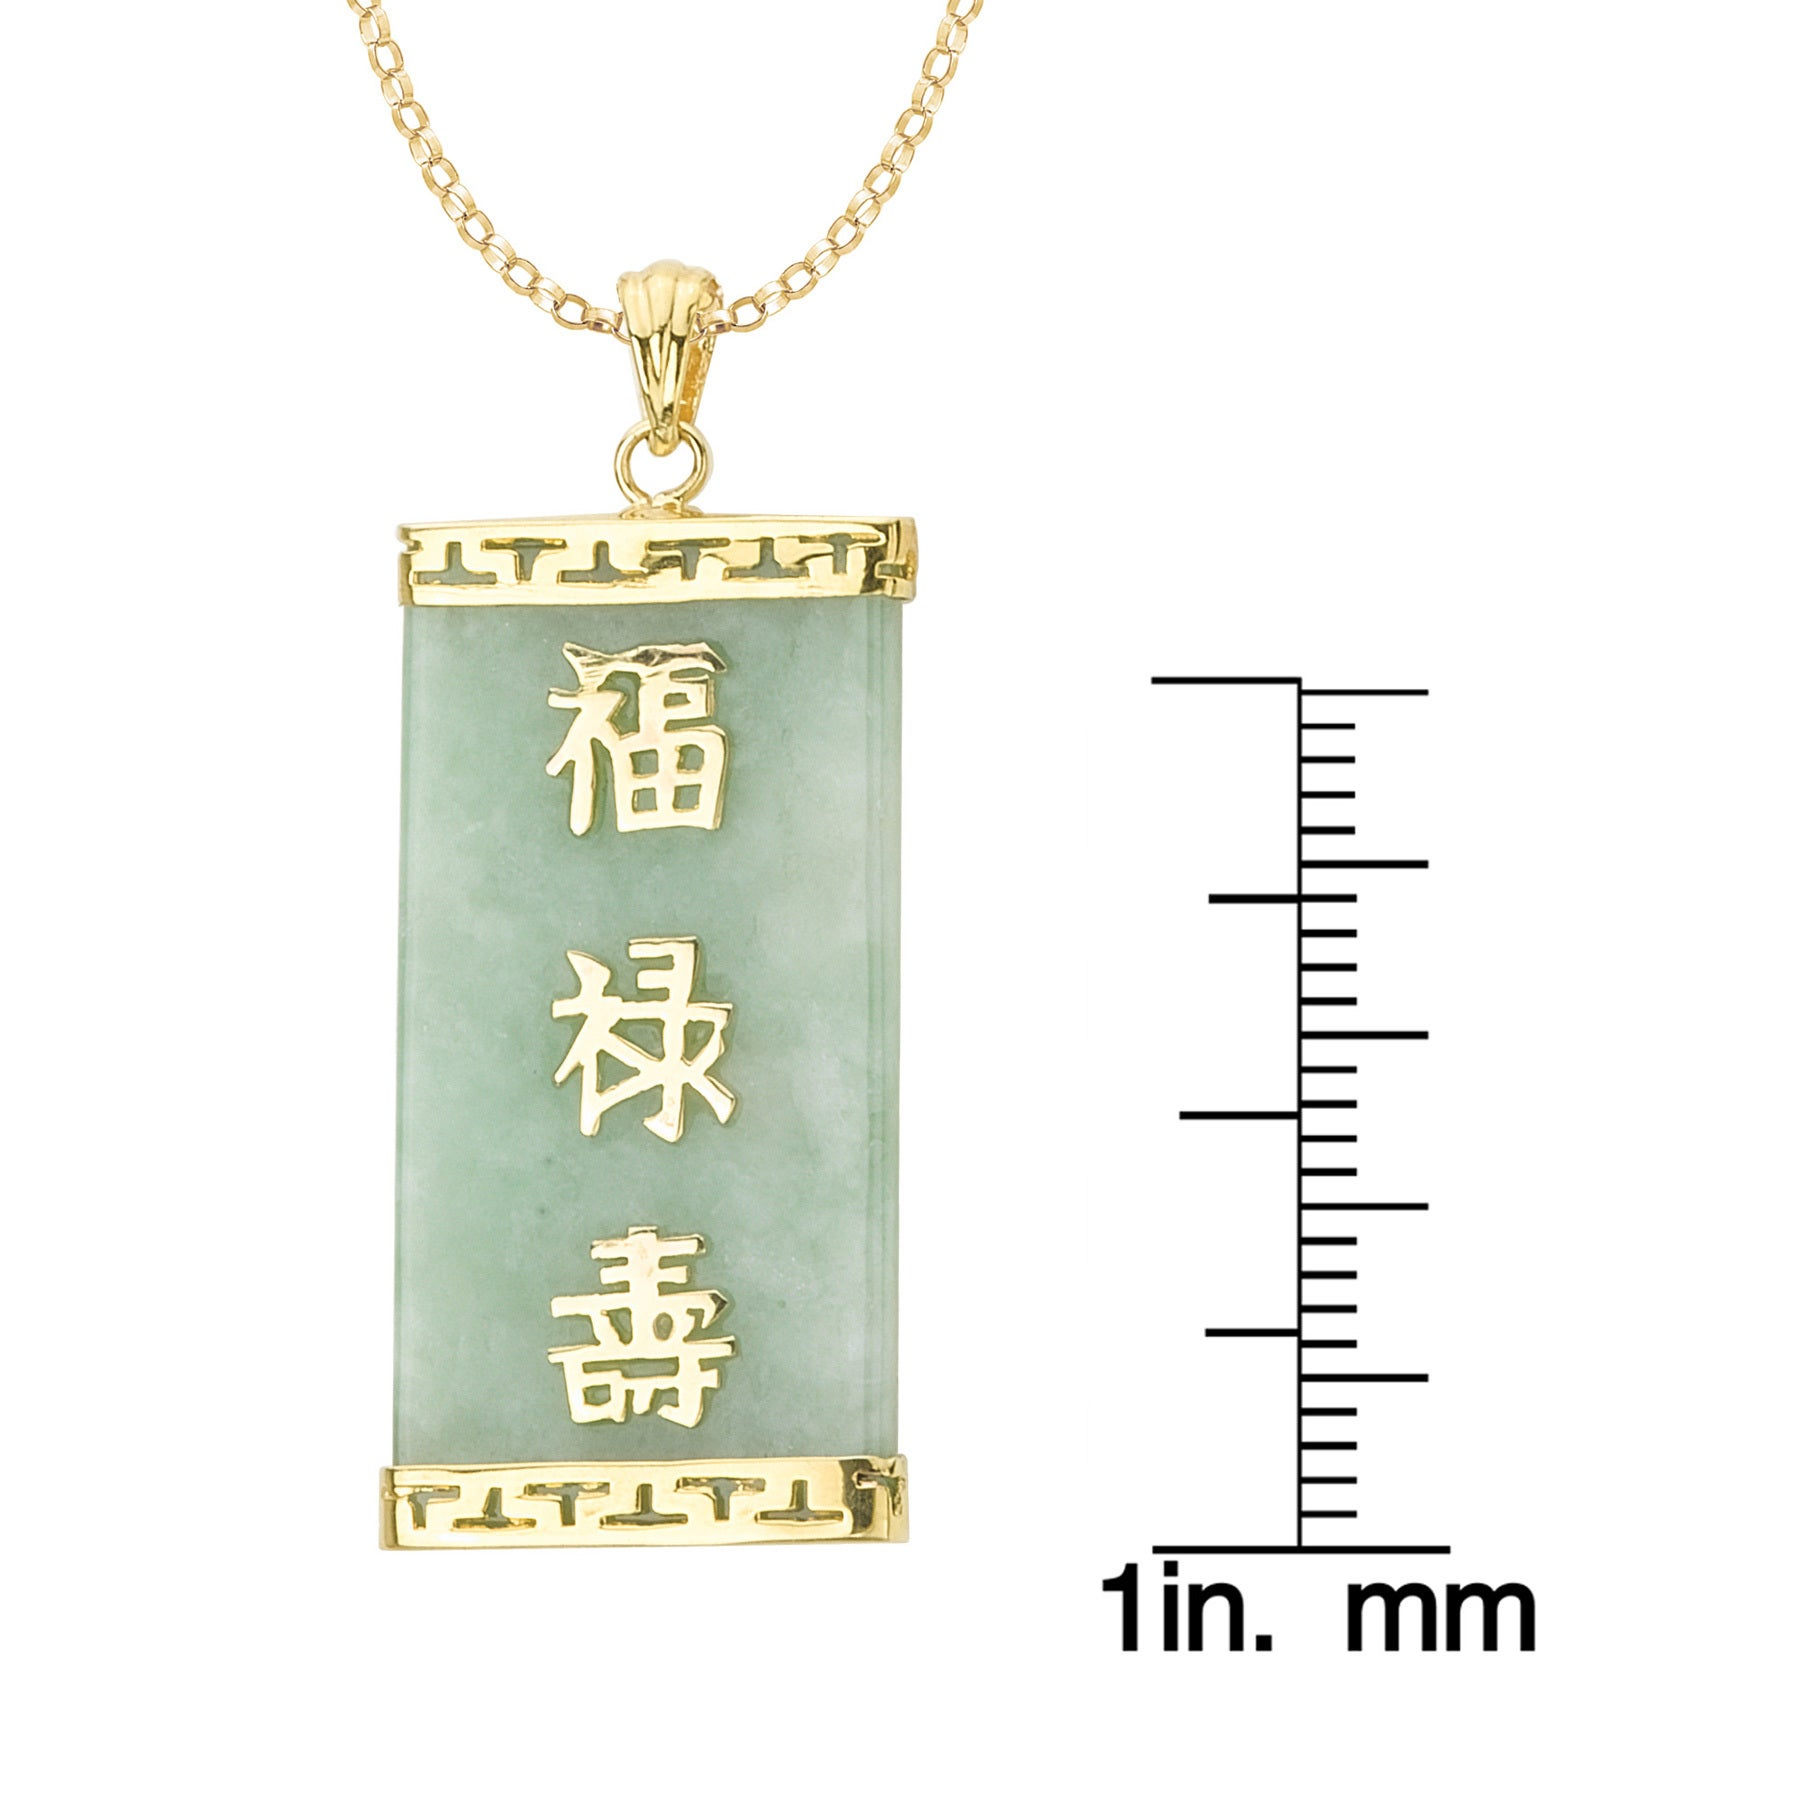 Avanti 14k yellow gold green jade pendant with good fortune avanti 14k yellow gold green jade pendant with good fortune chinese proverb necklace free shipping today overstock 19731123 buycottarizona